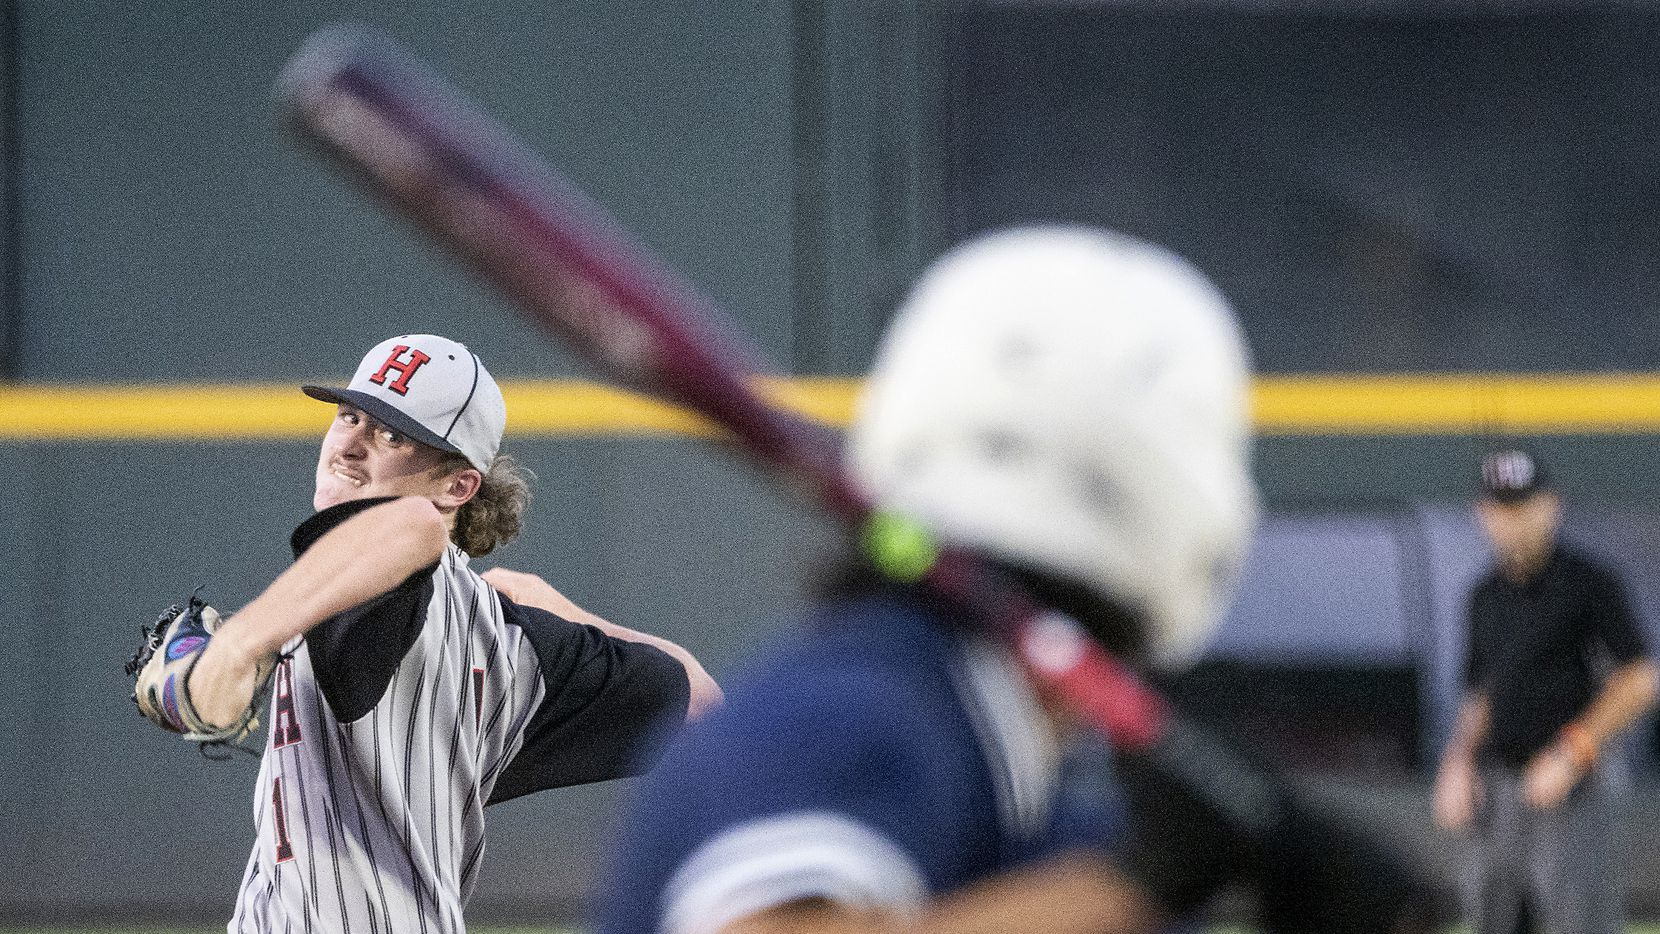 Rockwell-Heath, Baylor Baumann, (1), pitches against Comal Smithson Valley David DeHoyos, (22), during the first inning of the 2021 UIL 6A state baseball semifinals held, Friday, June 11, 2021, in Round Rock, Texas.